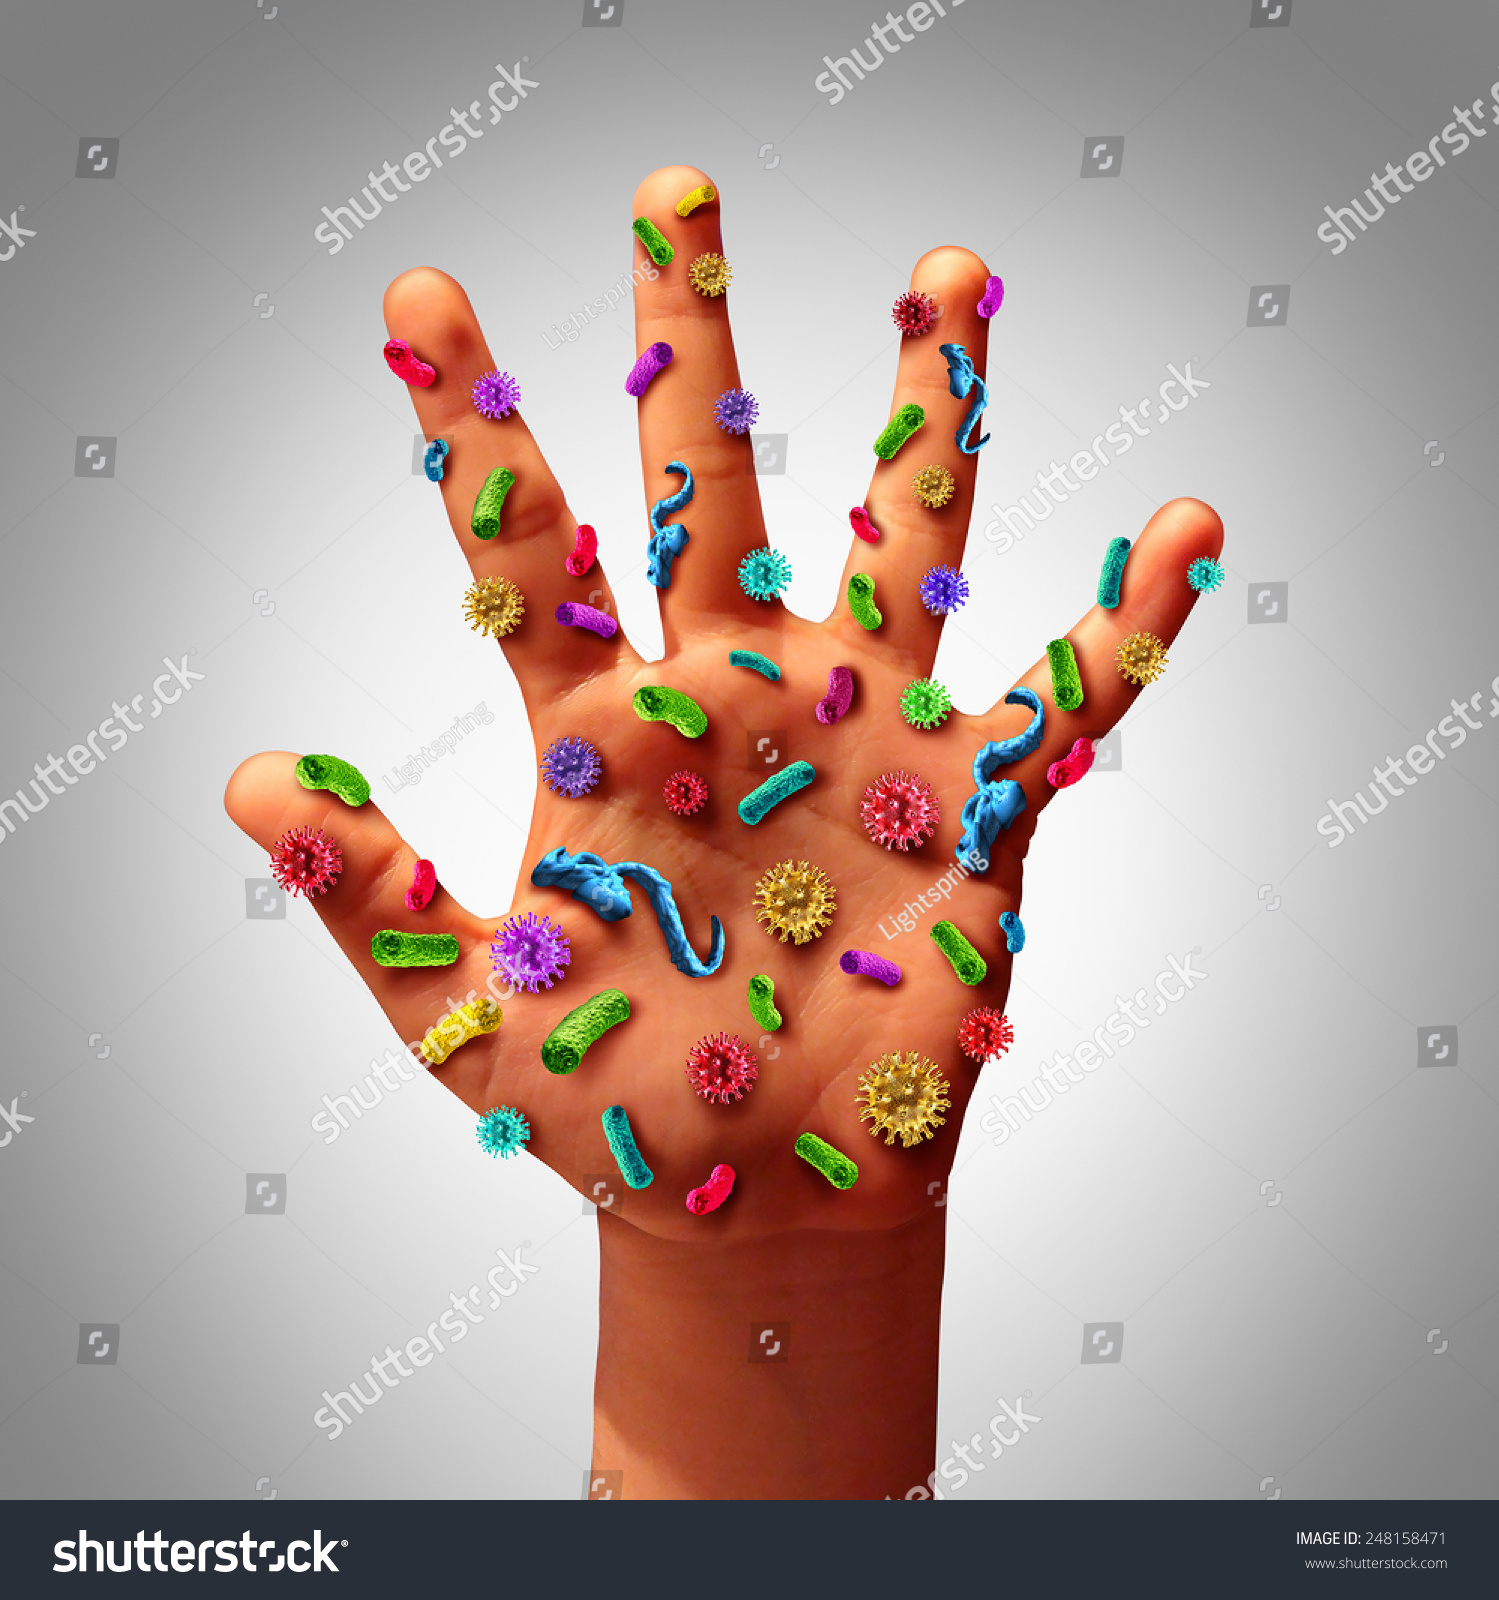 Pictures Of Germs On Hands 95